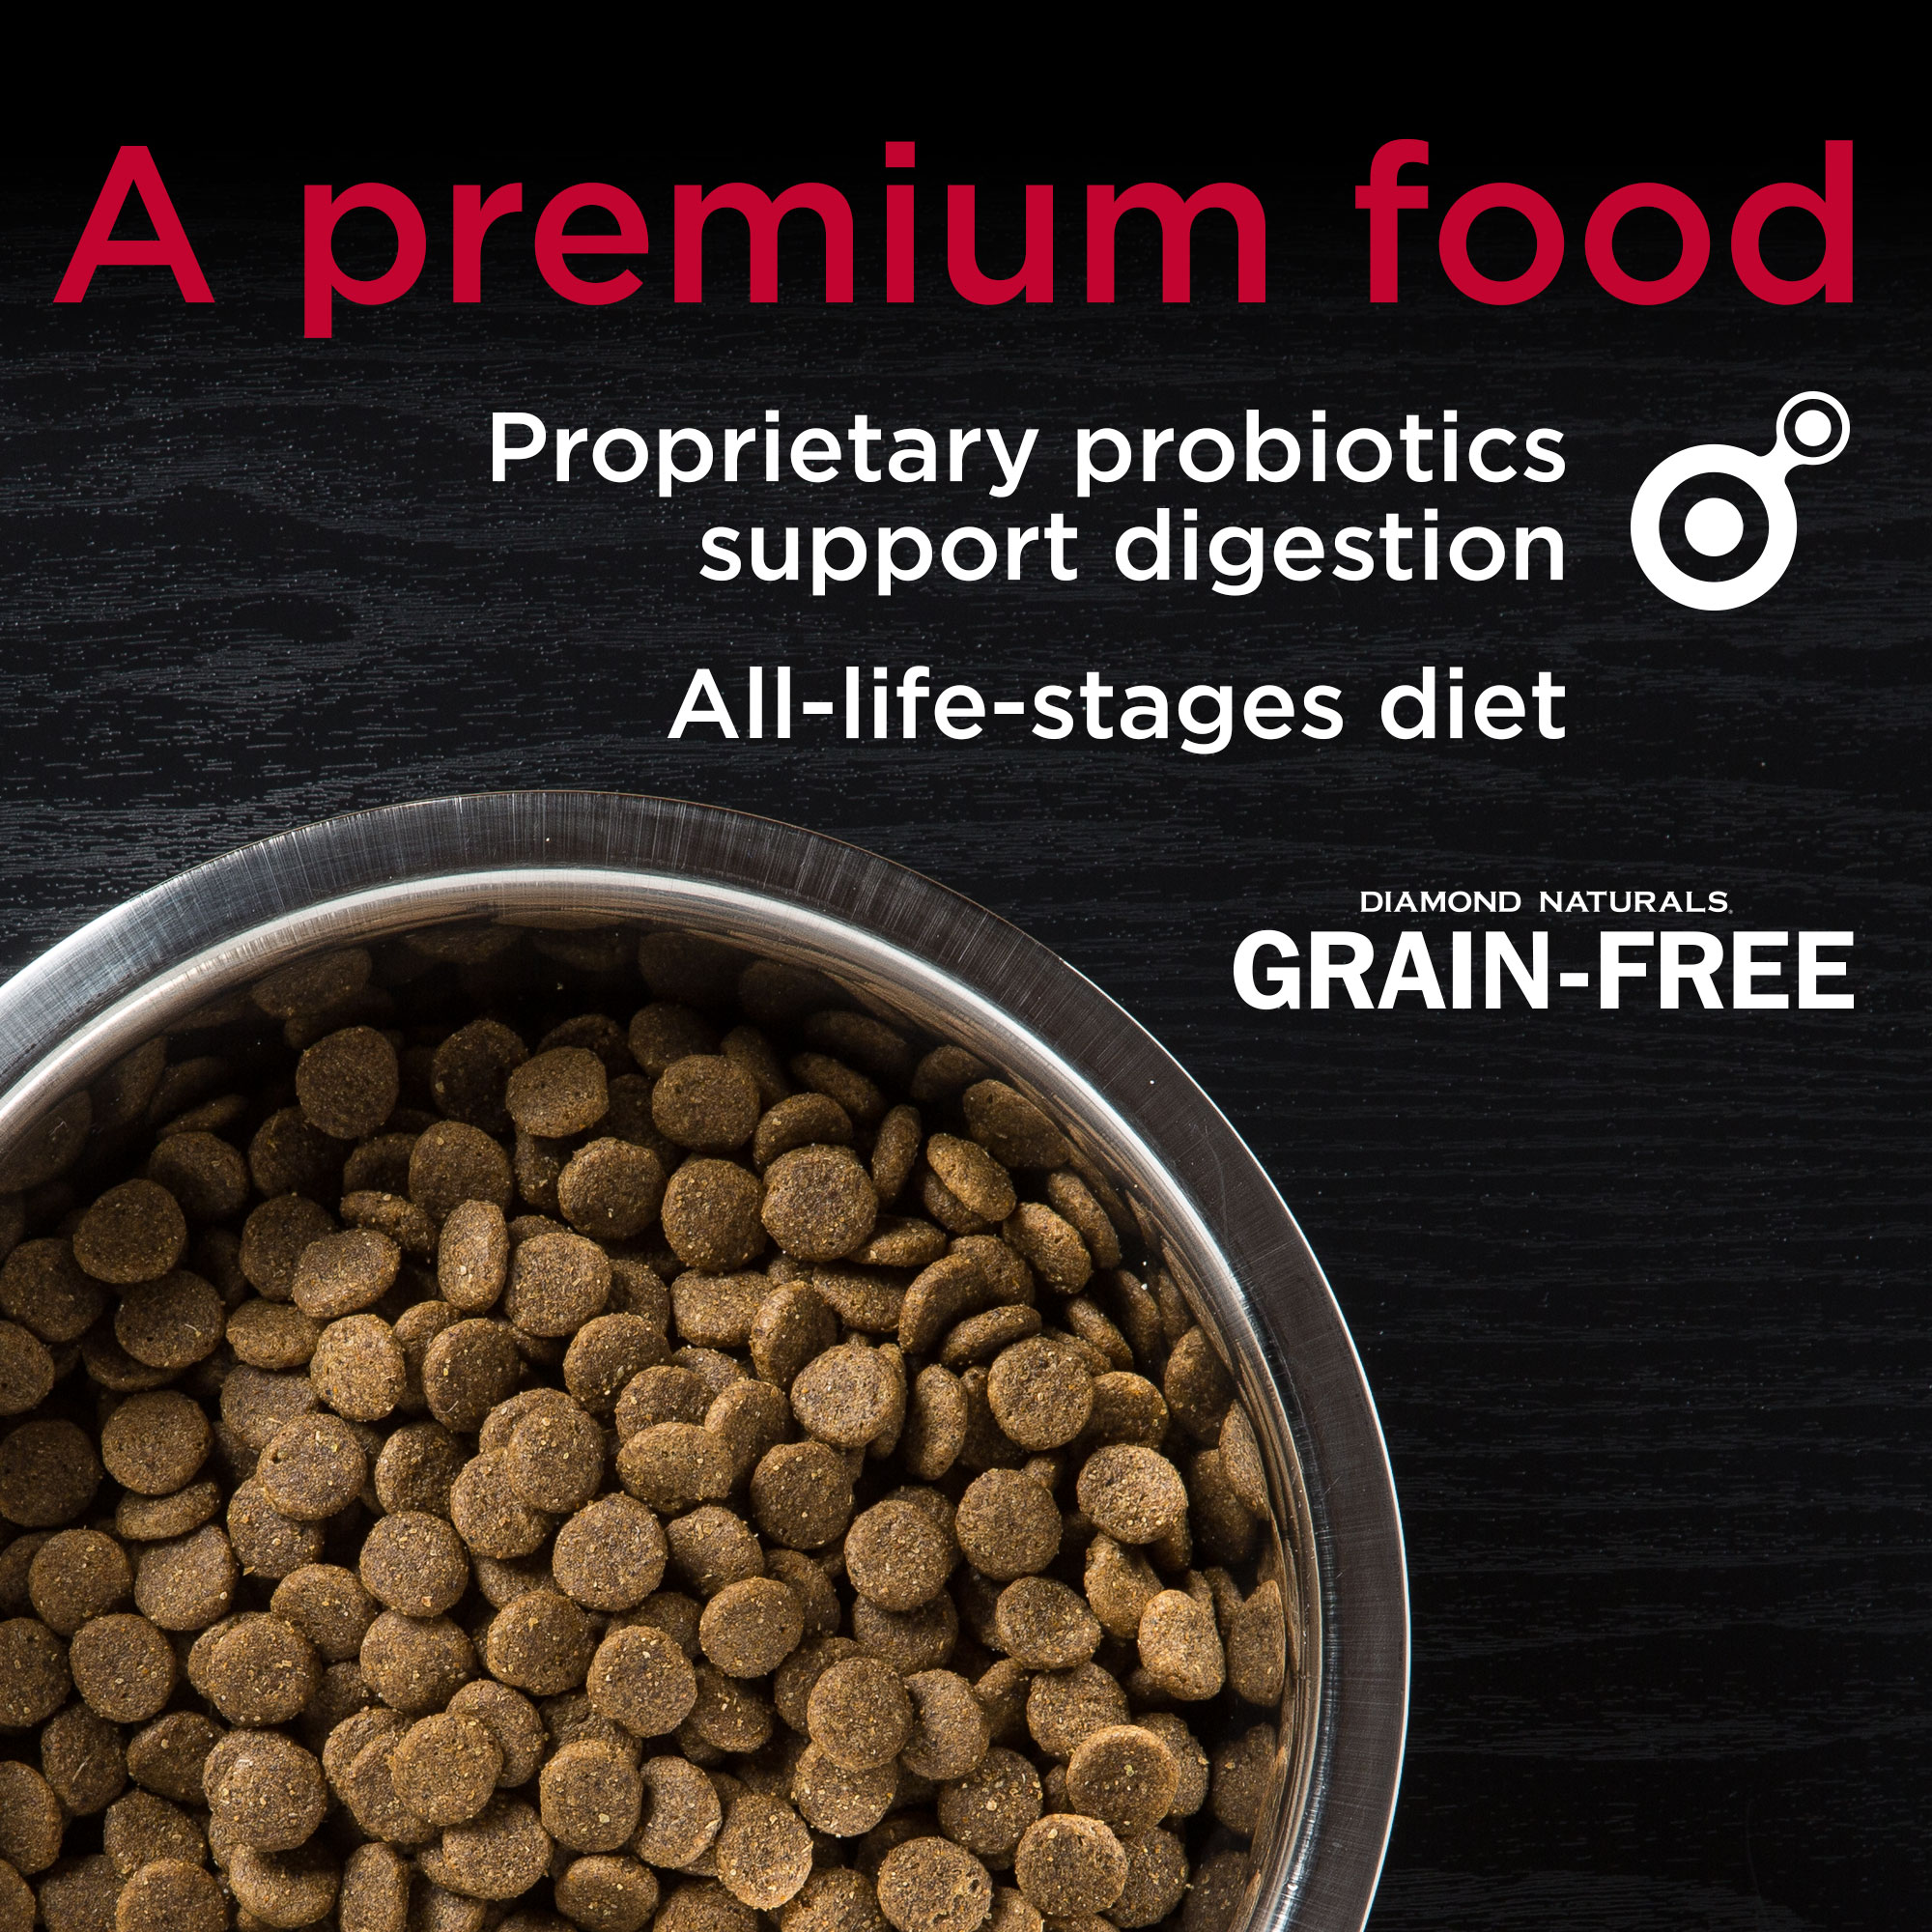 Diamond Naturals Grain-Free a premium food